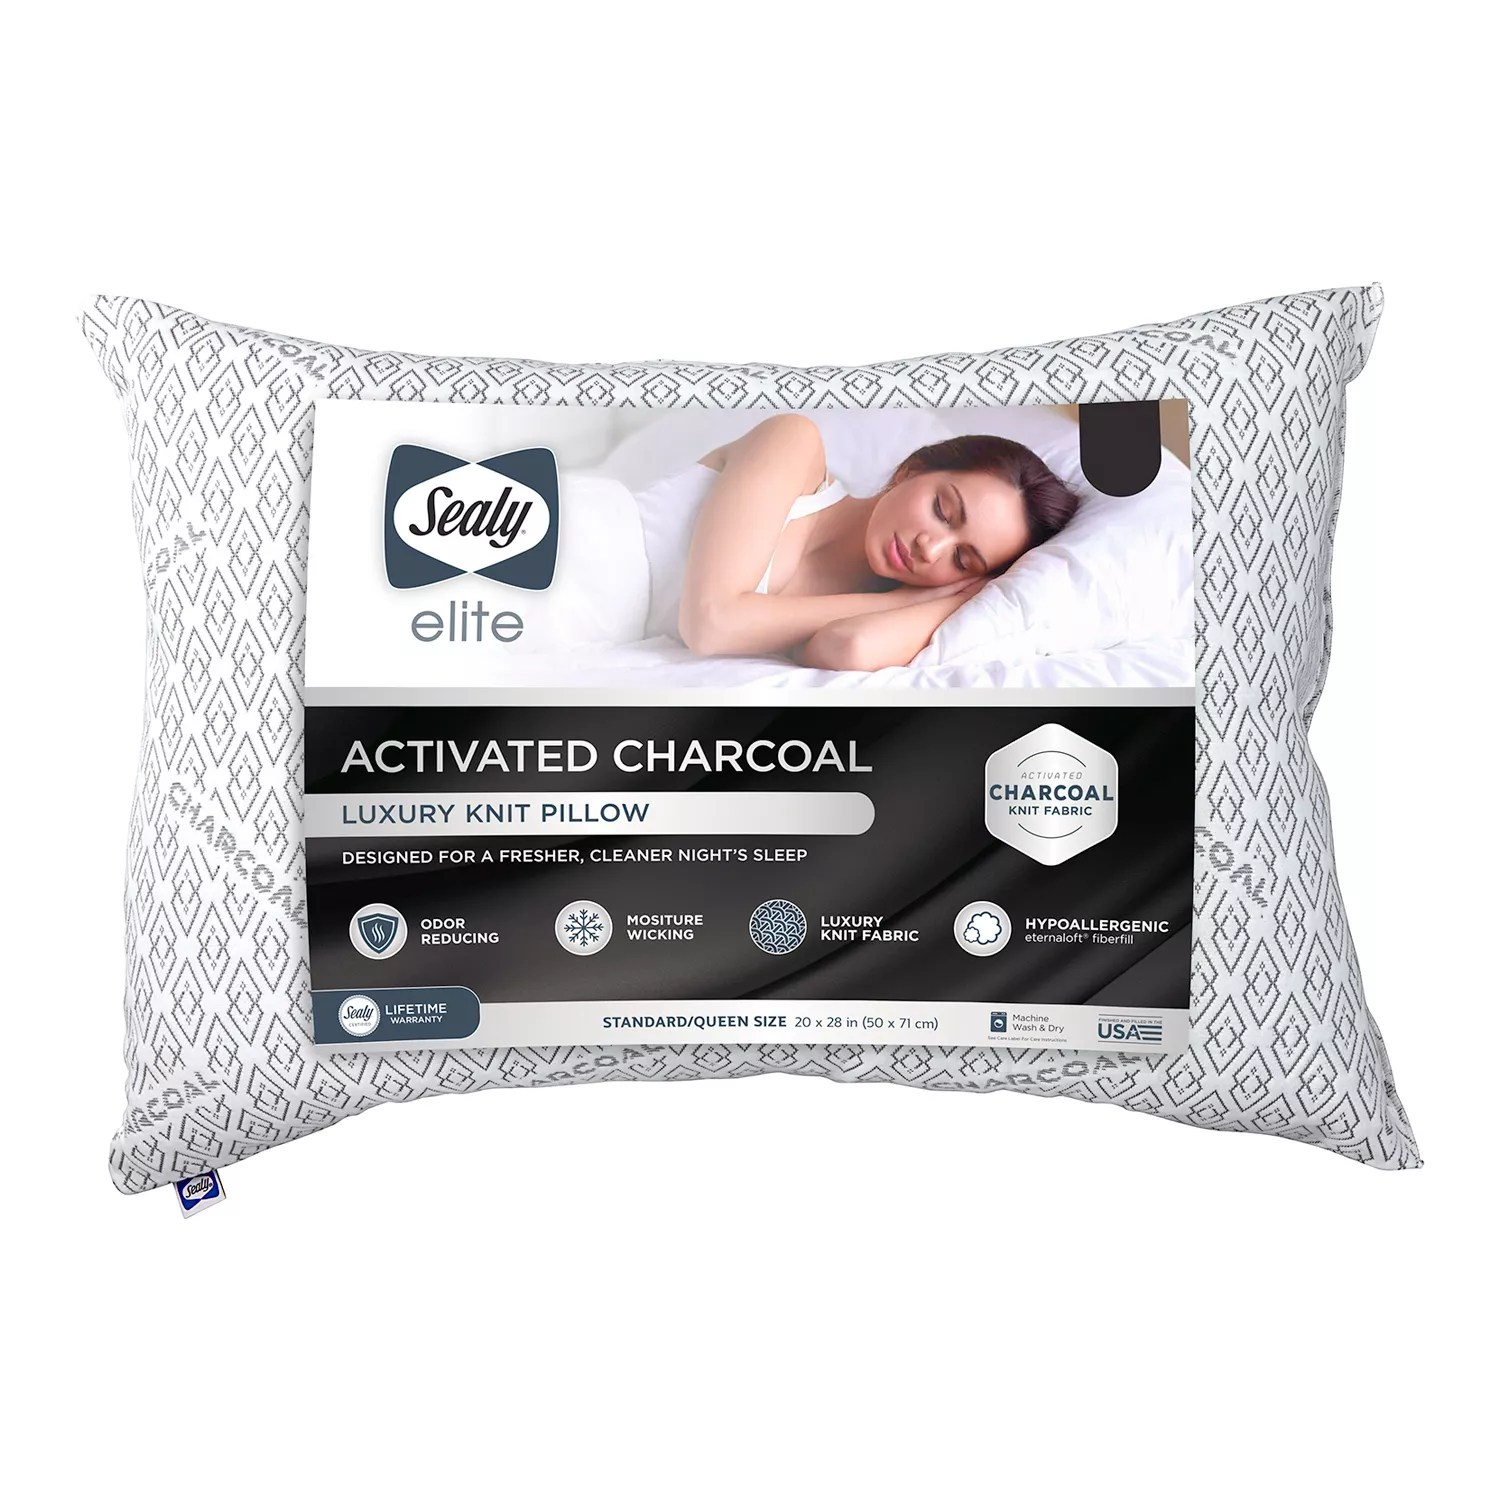 sealy elite activated charcoal detoxifying pillow